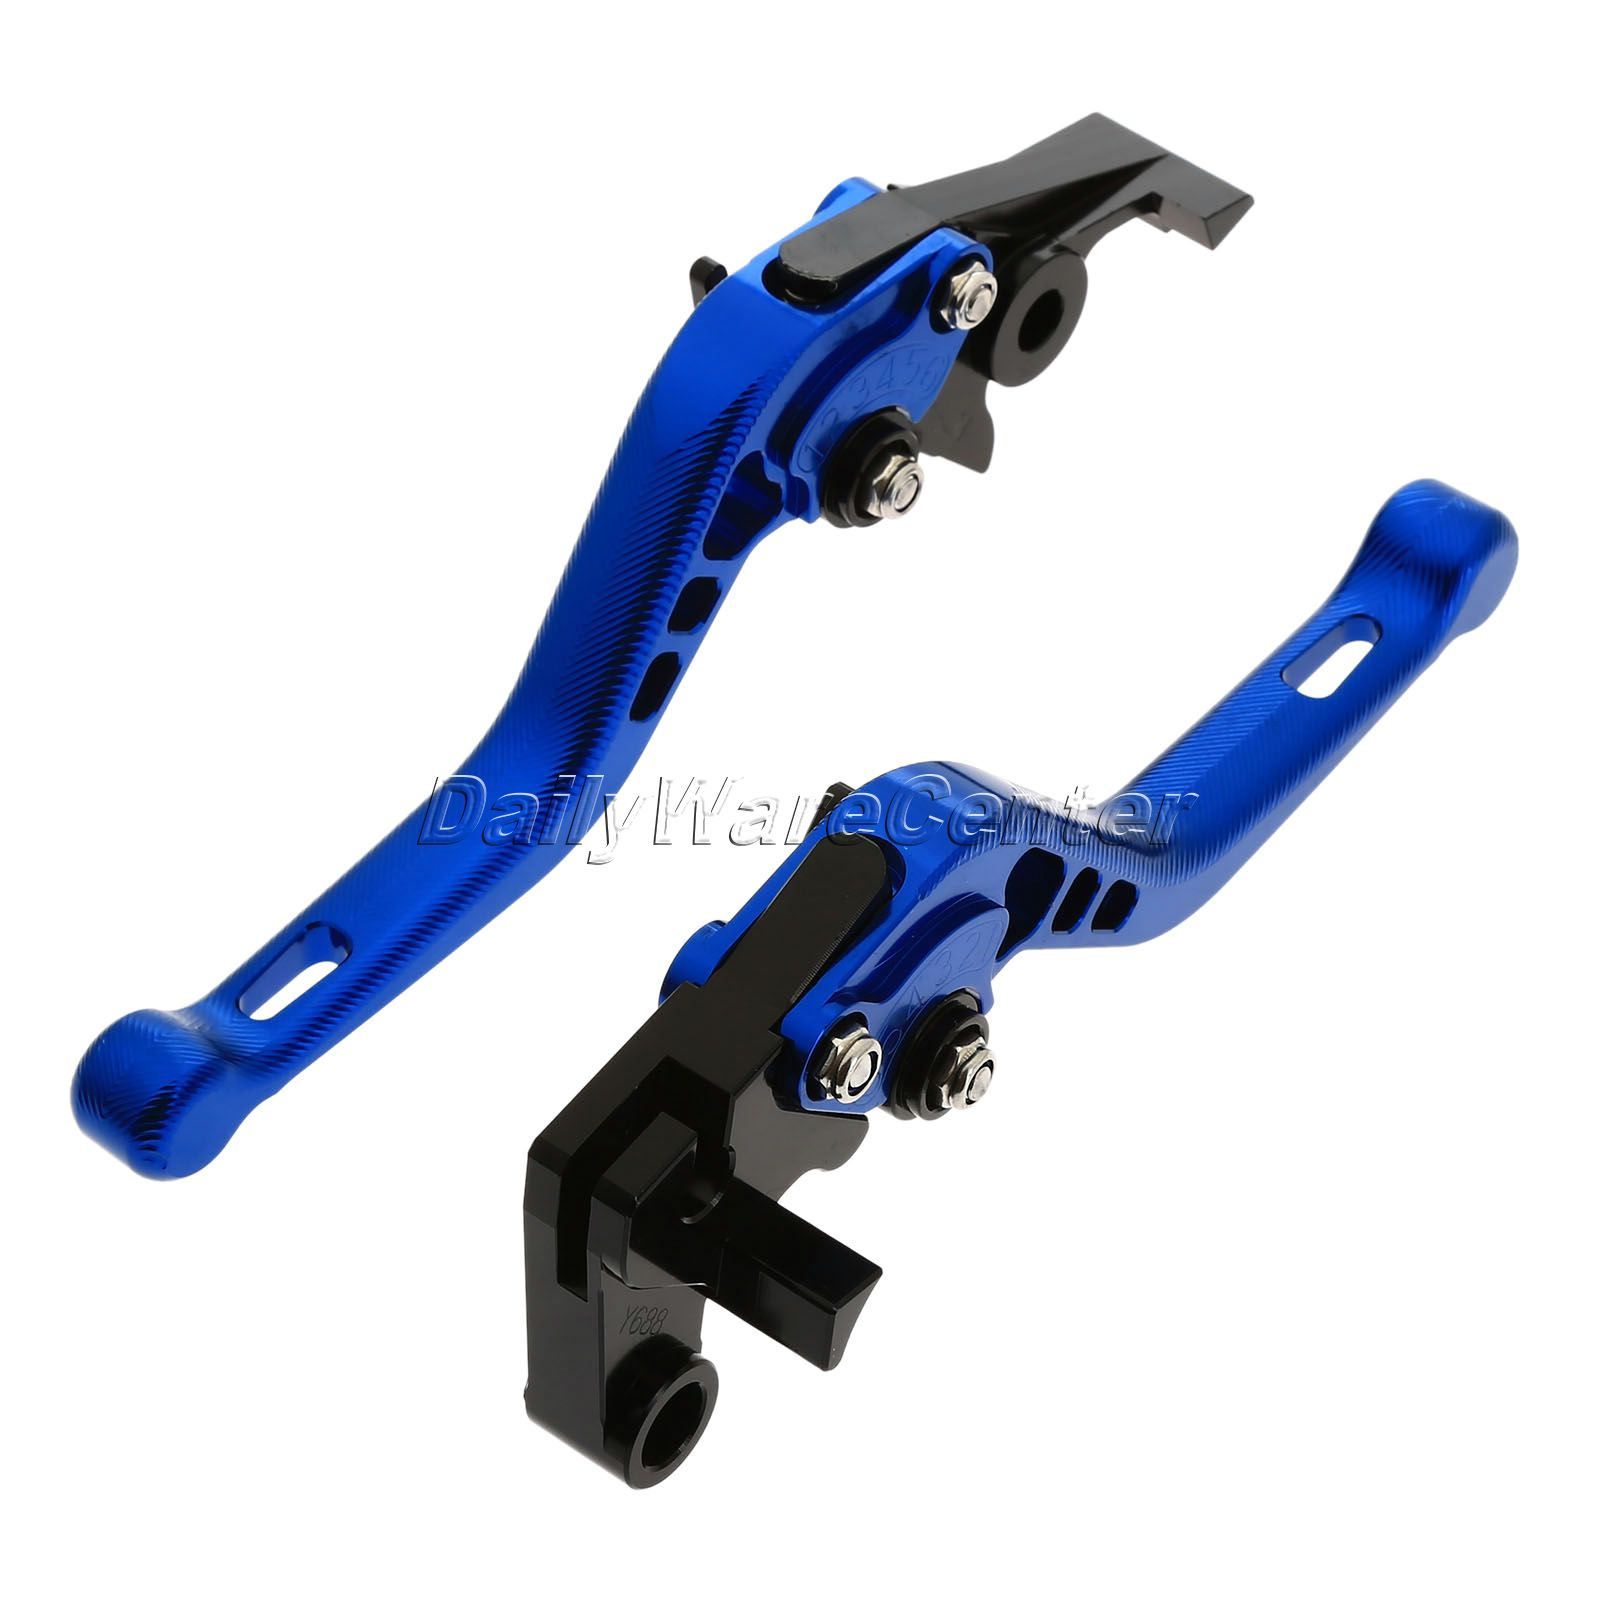 2016 New 3D Short CNC Adjustable Brake Clutch Levers for Yamaha YZF R1/R1M 2015 Motorcycle Motorbike Brake Modification Parts наборы для праздника peppa pig набор посуды 25 предметов пеппа принцесса